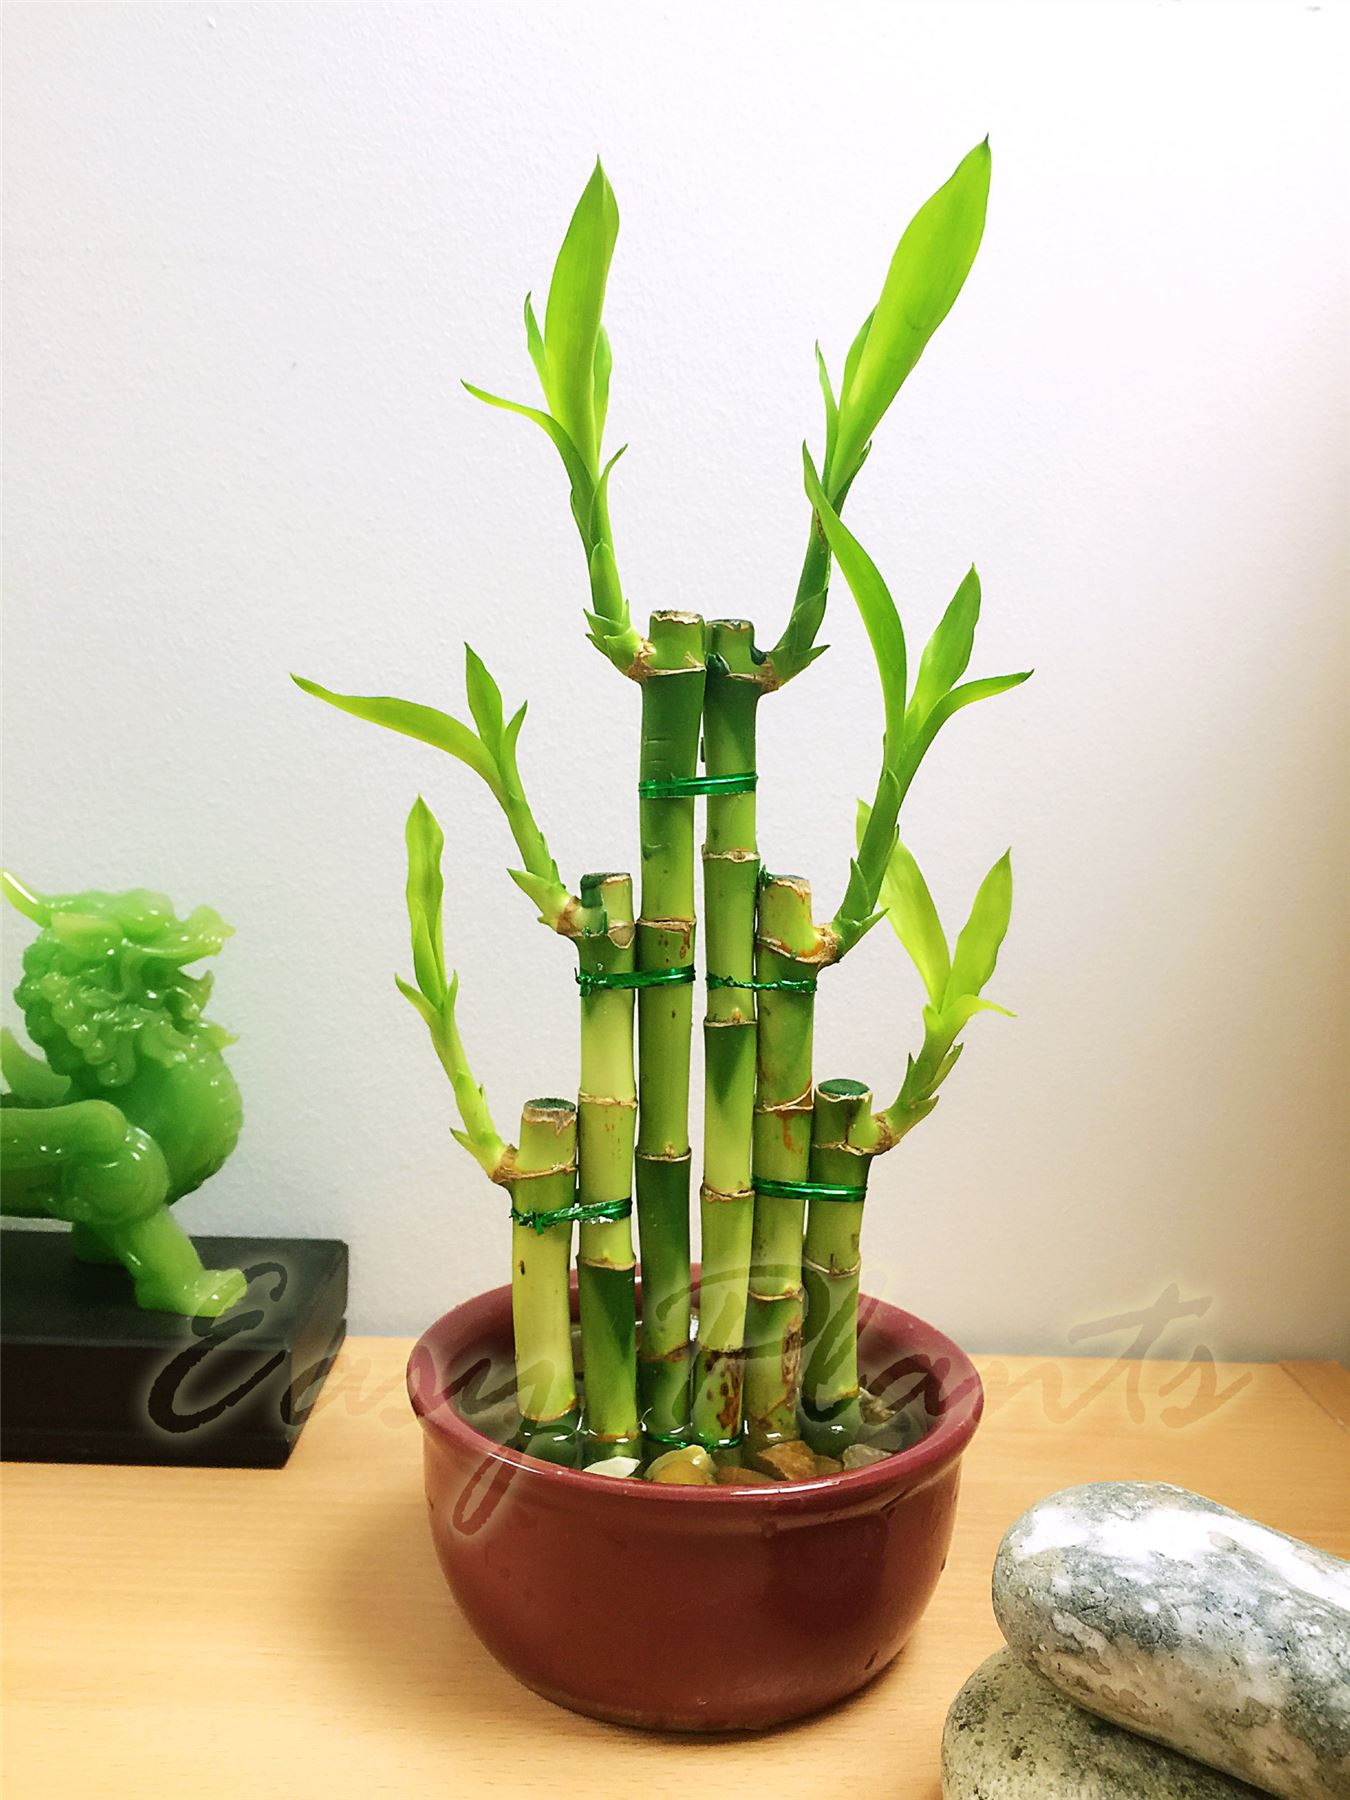 Ceramic Pots For Plants Indoor 1 Lucky Bamboo Ribbon Plant Evergreen Indoor Bonsai In